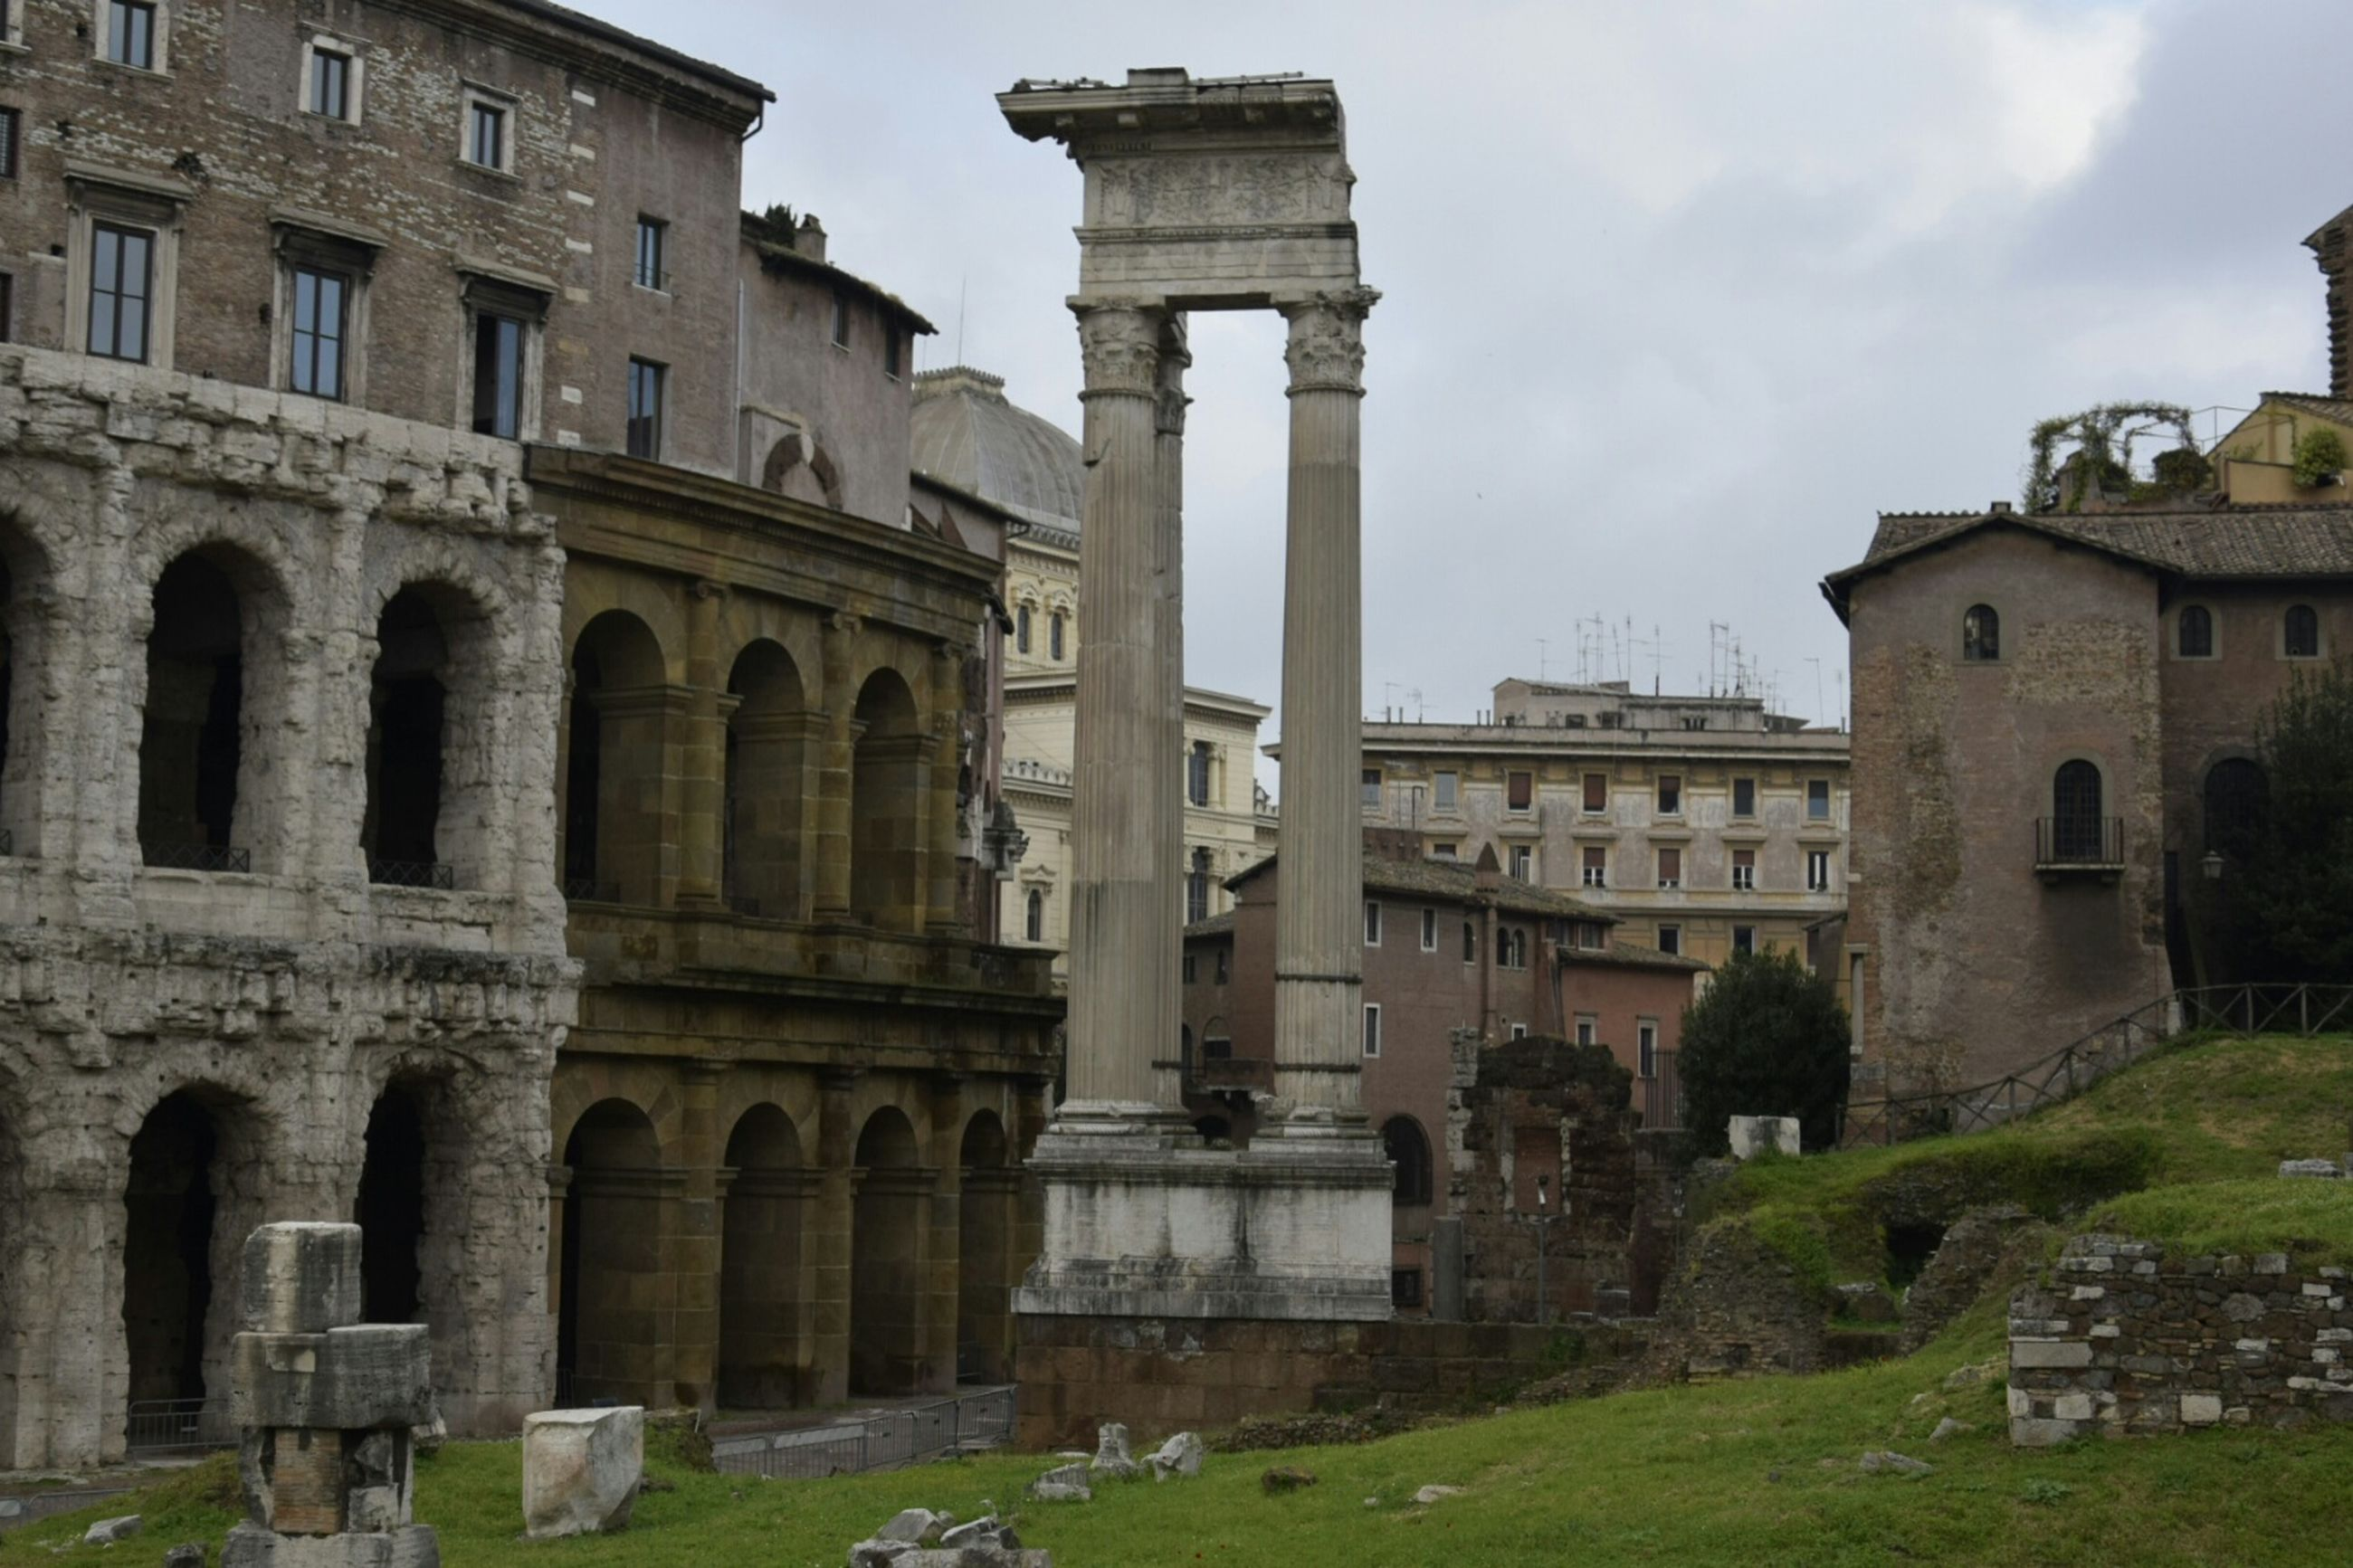 architecture, built structure, history, building exterior, old ruin, the past, ancient, old, famous place, travel destinations, ancient civilization, tourism, architectural column, travel, international landmark, arch, grass, sky, ruined, damaged